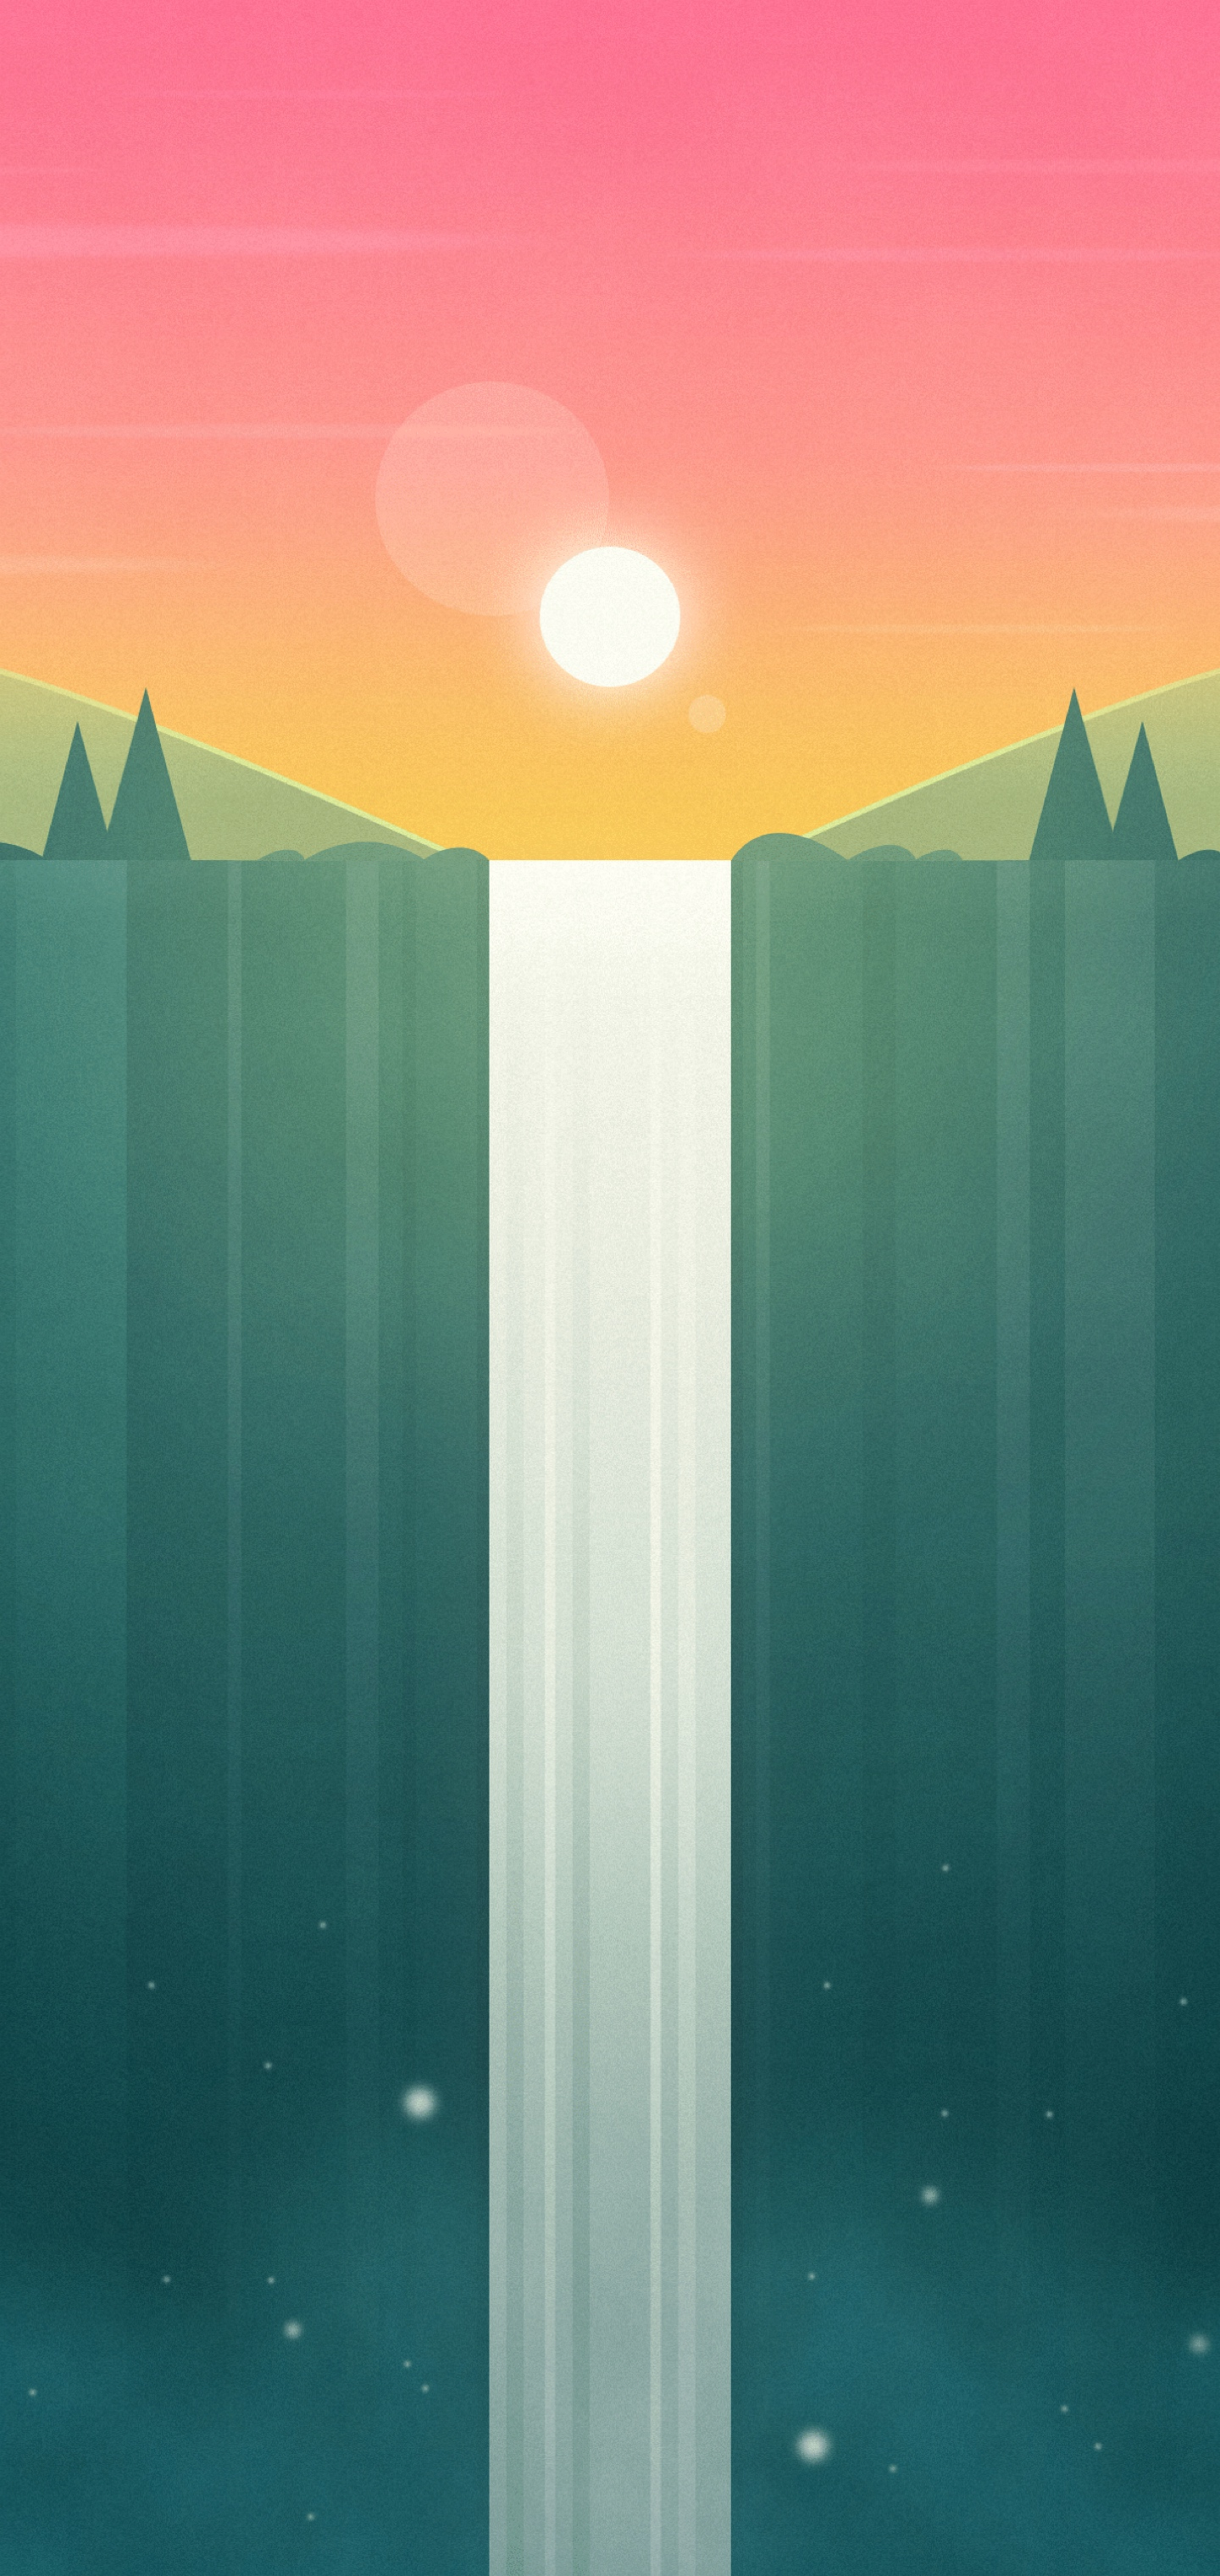 Cartoon landscape iphone wallpapers cloudxero idownloadblog 5